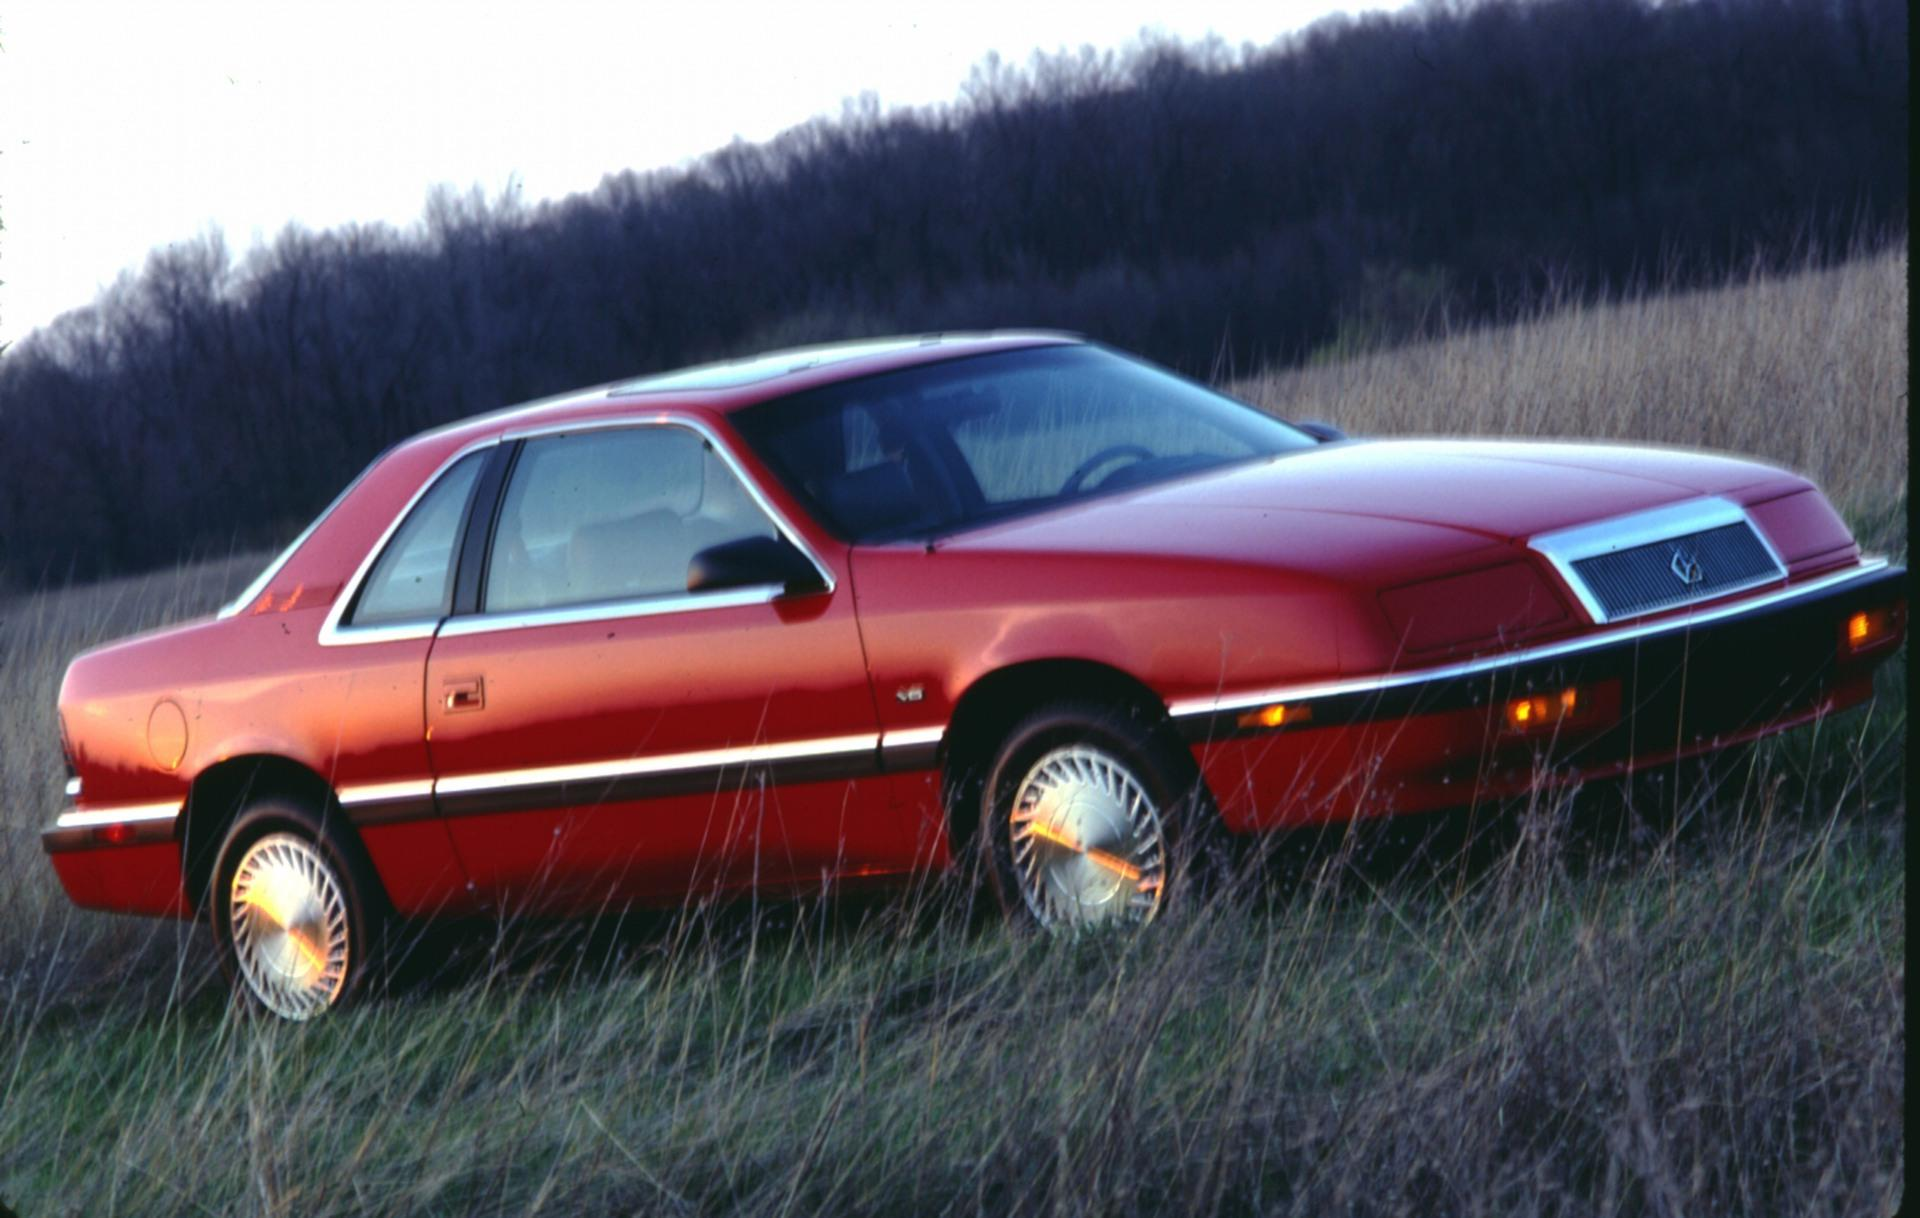 chrysler le baron images #9